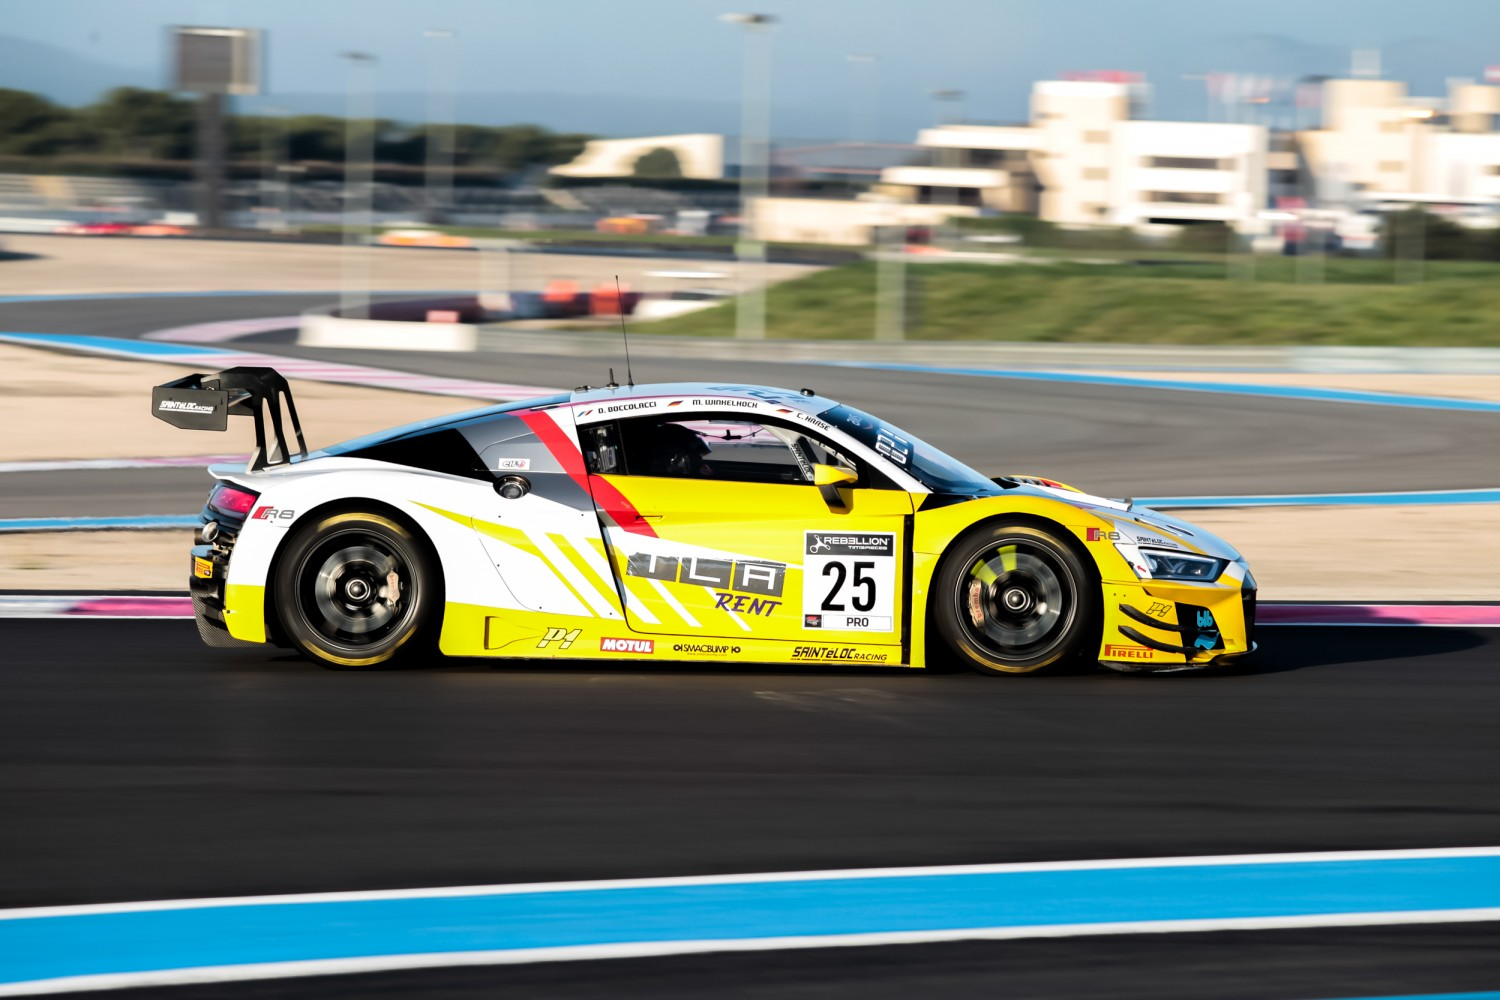 Sainteloc Audi on top again in Circuit Paul Ricard pre-qualifying